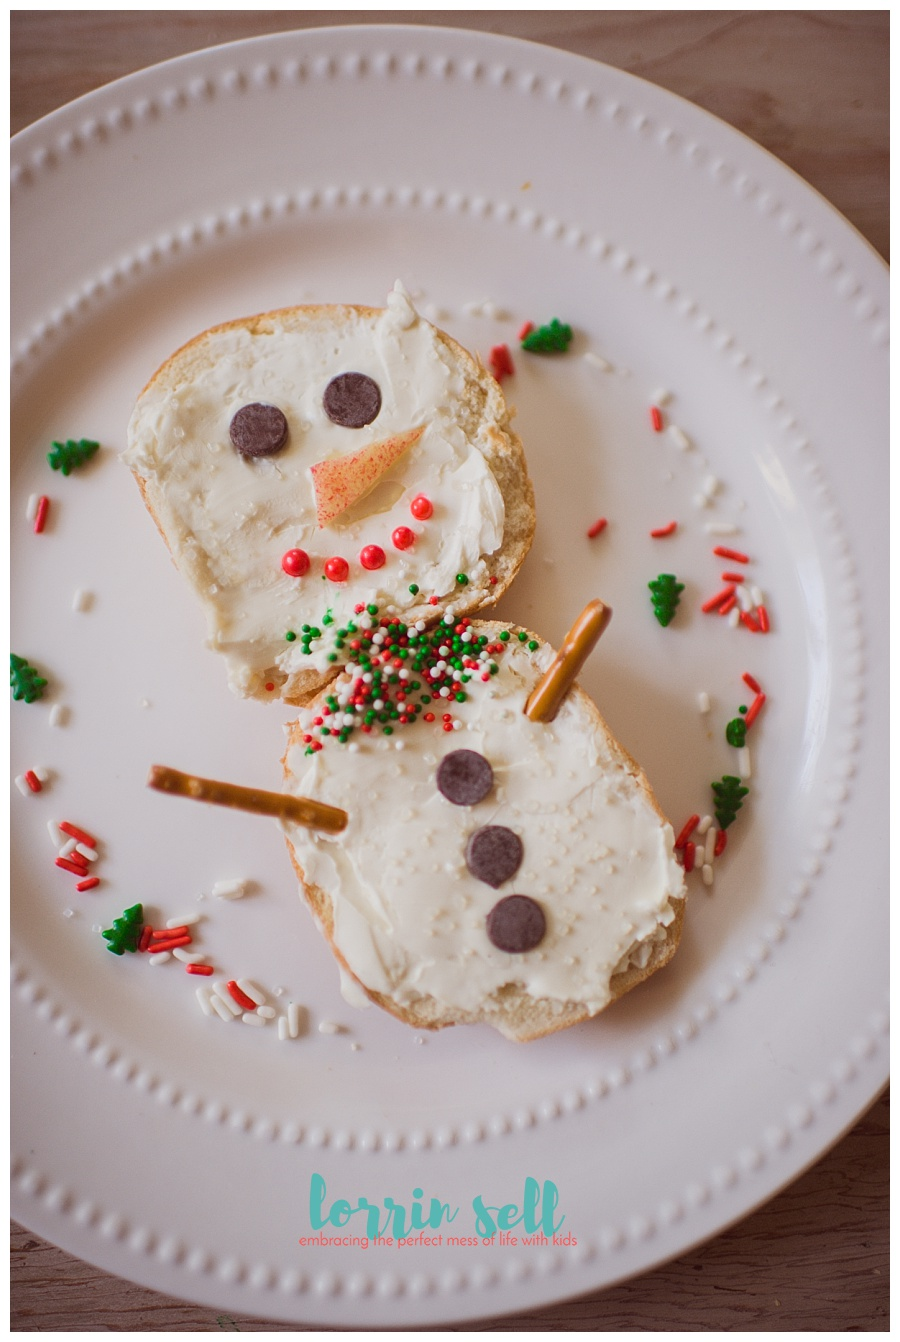 This is the perfect Frosty the Snowman activity, and it was simple to make, and delish!  Plus, it's adorable! The kids loved it!